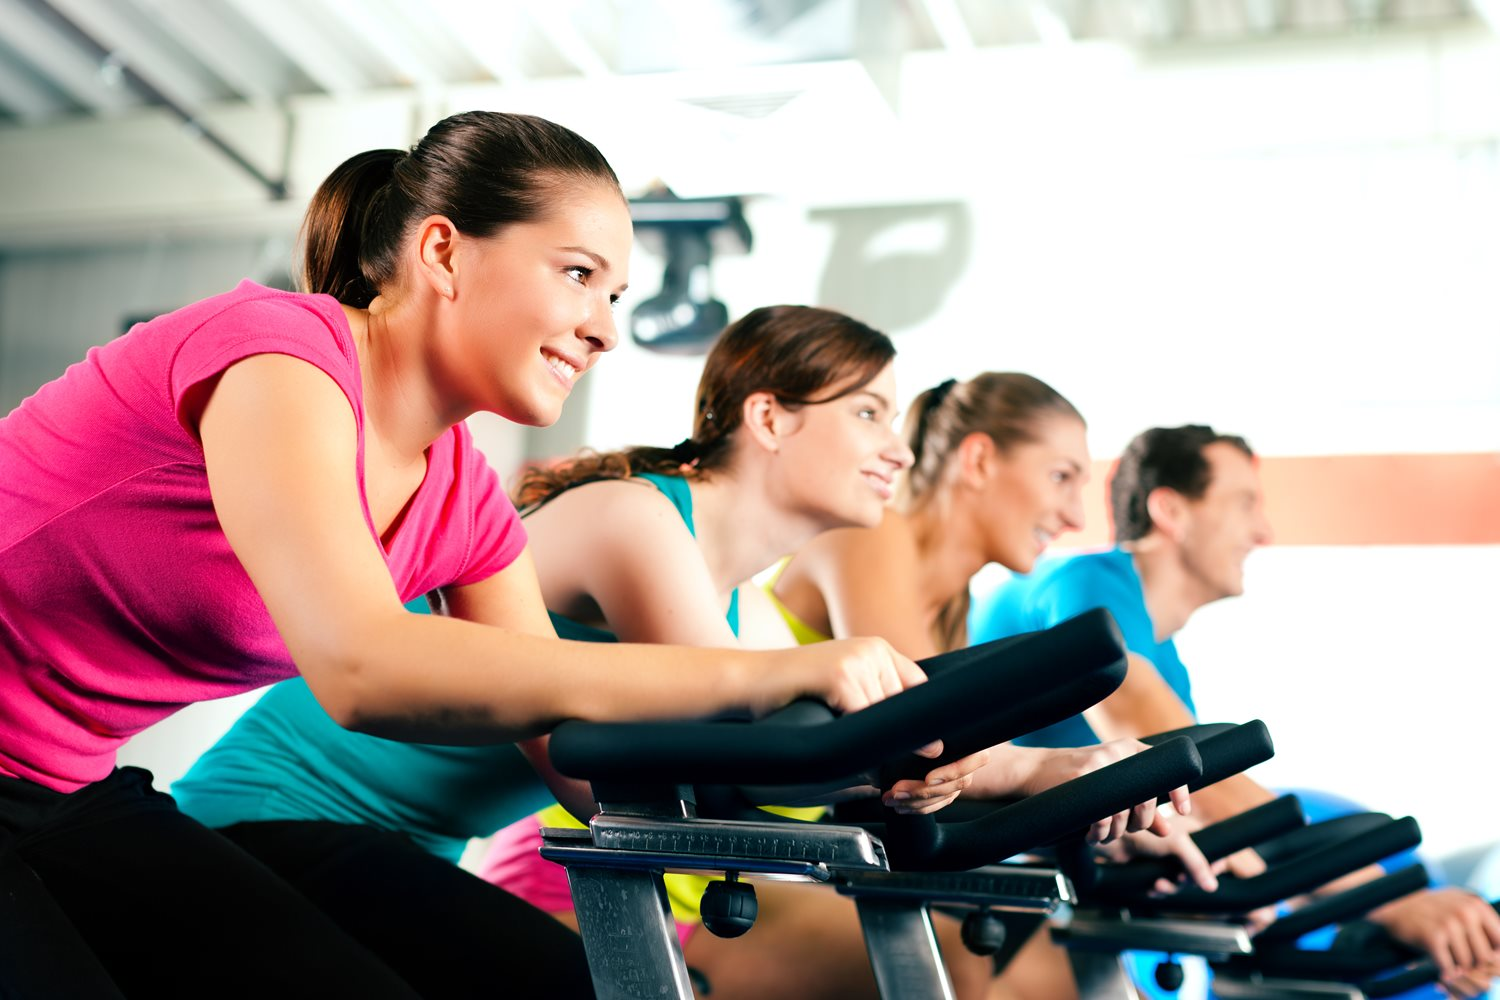 Our Fitness Studio is equipped with state-of-the-art spin bikes